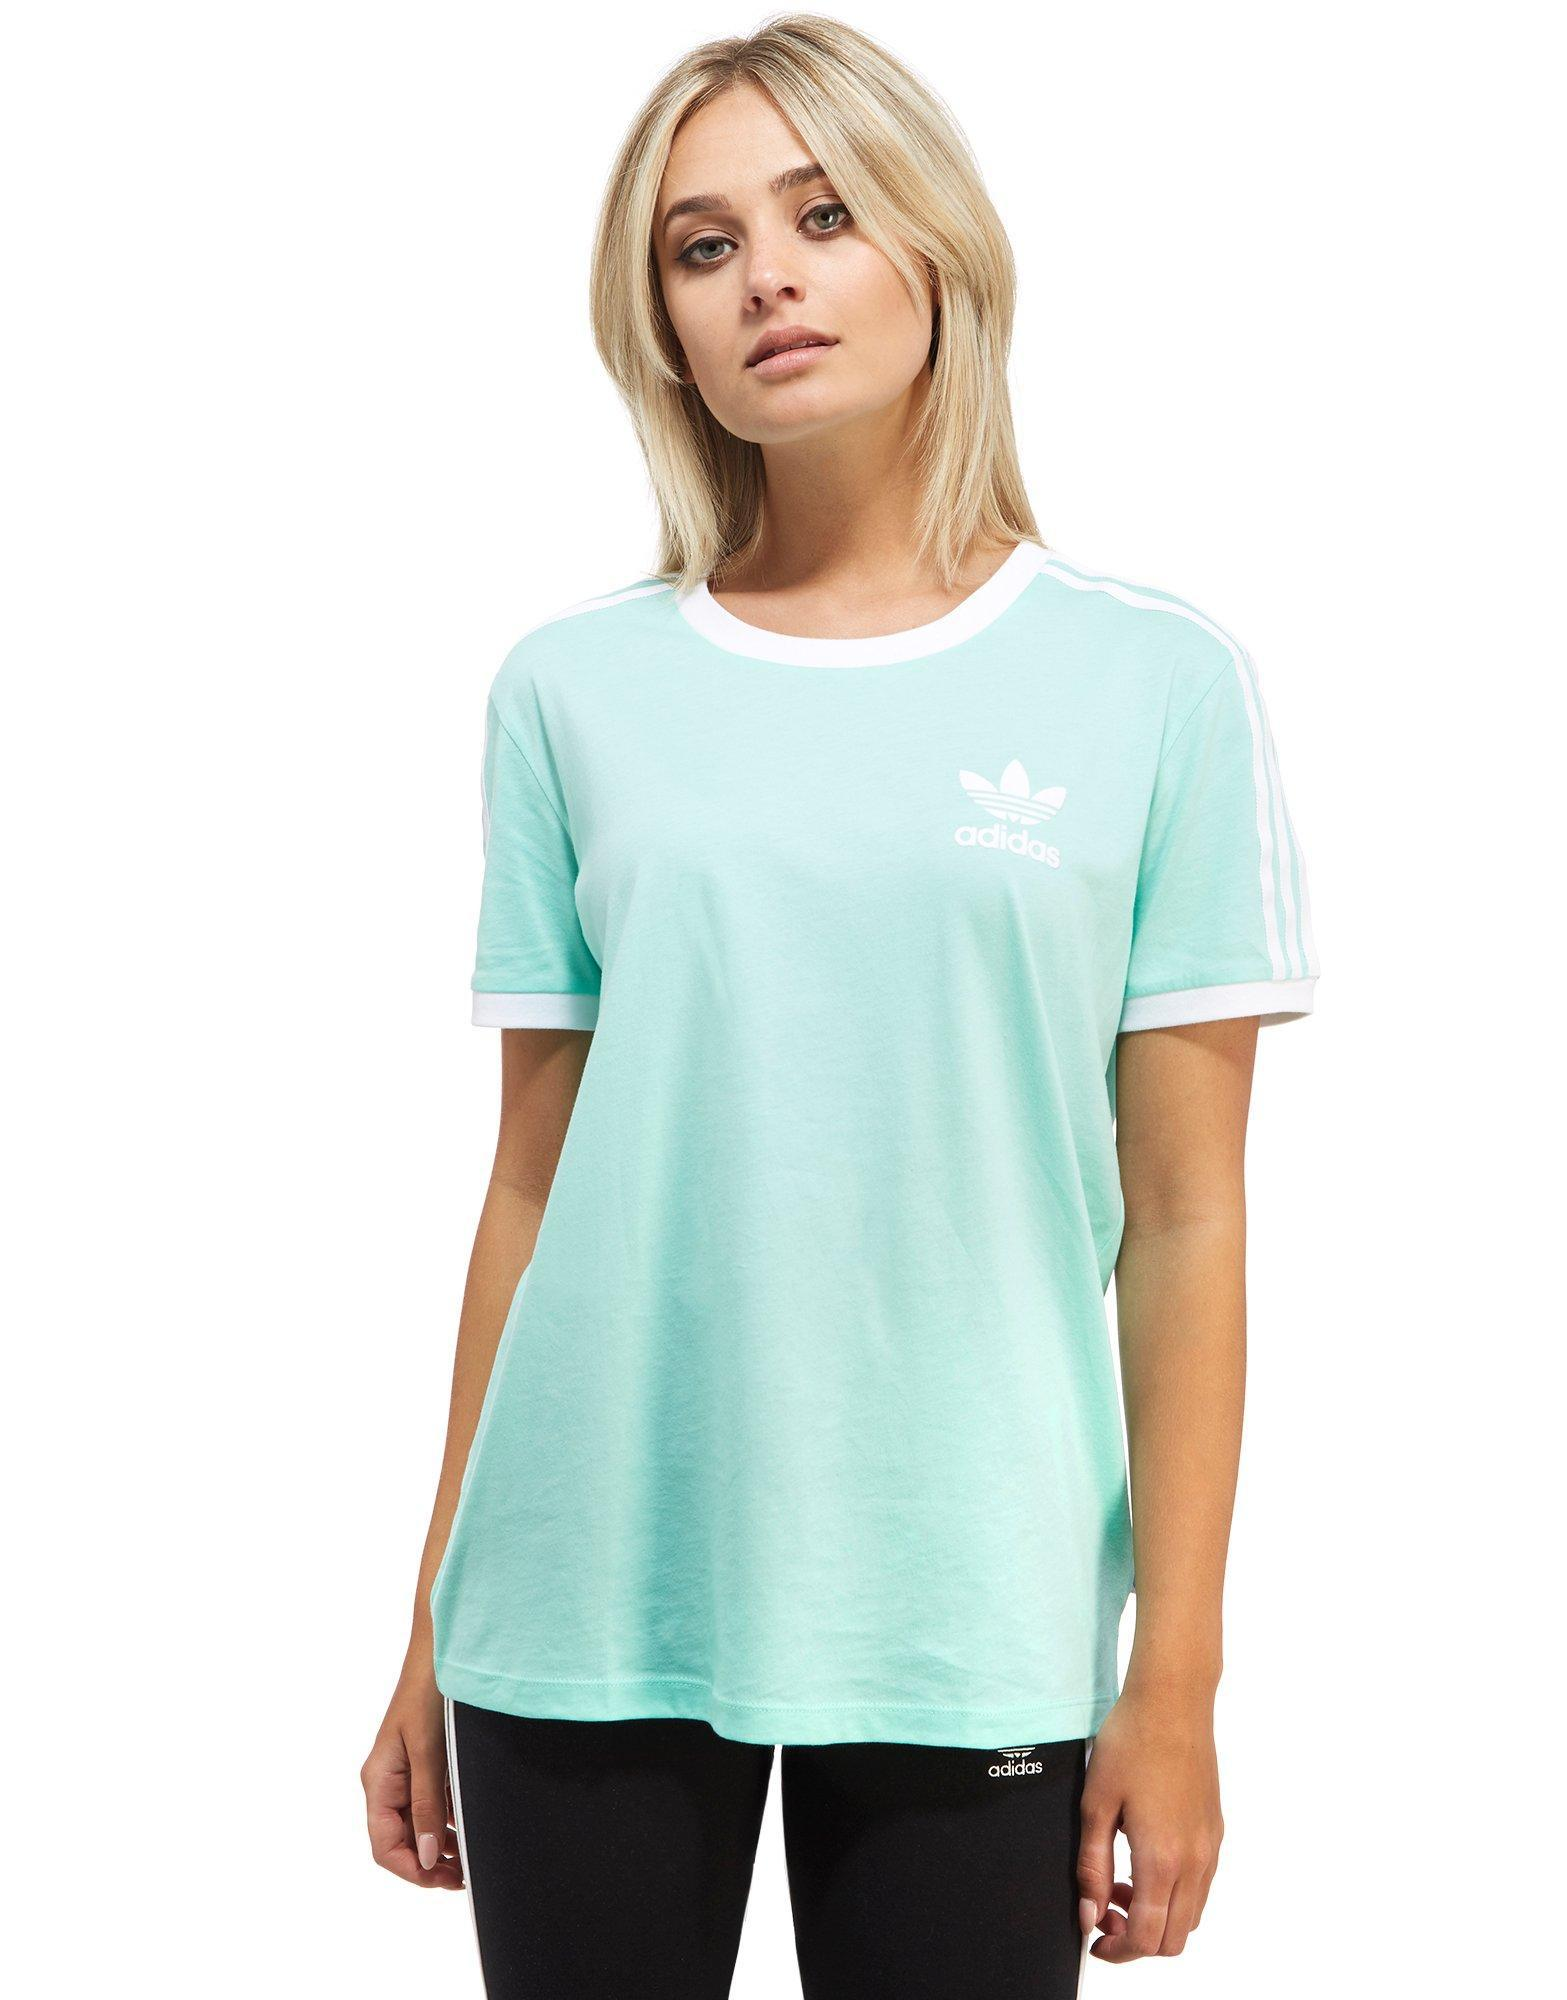 2d40004ae Adidas Logo Shirt Womens Green « Alzheimer's Network of Oregon